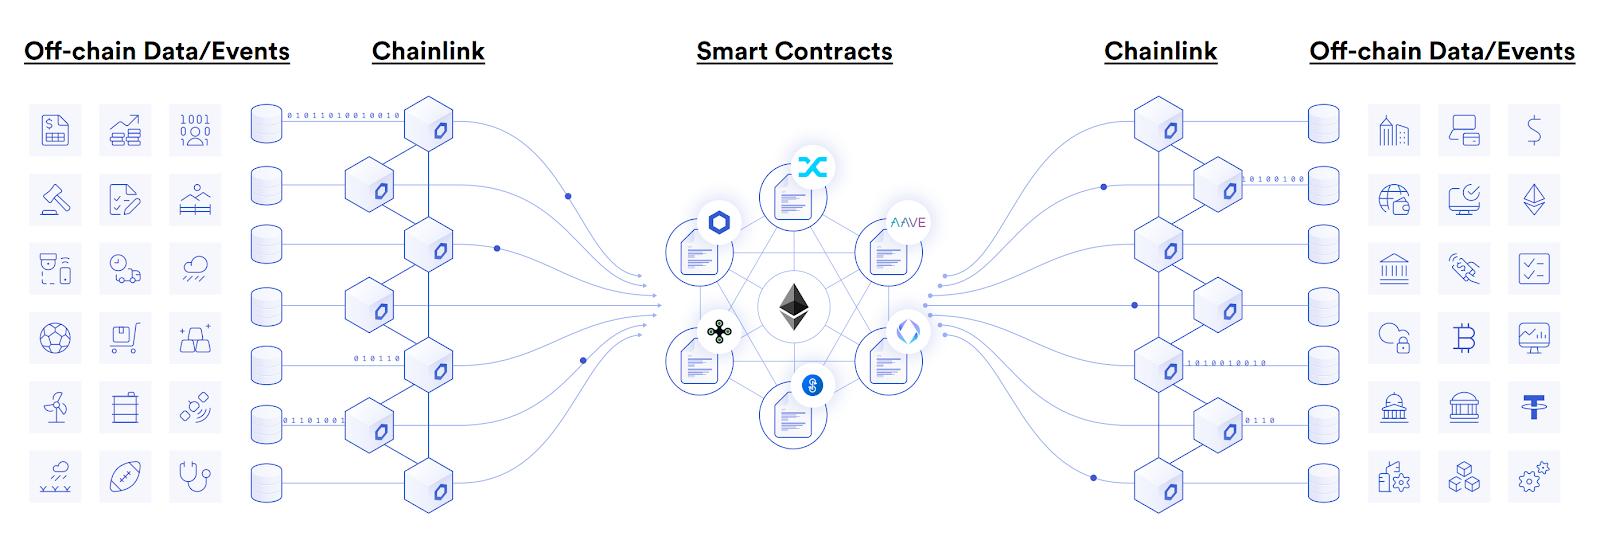 Chainlink powers the DeFi ecosystem